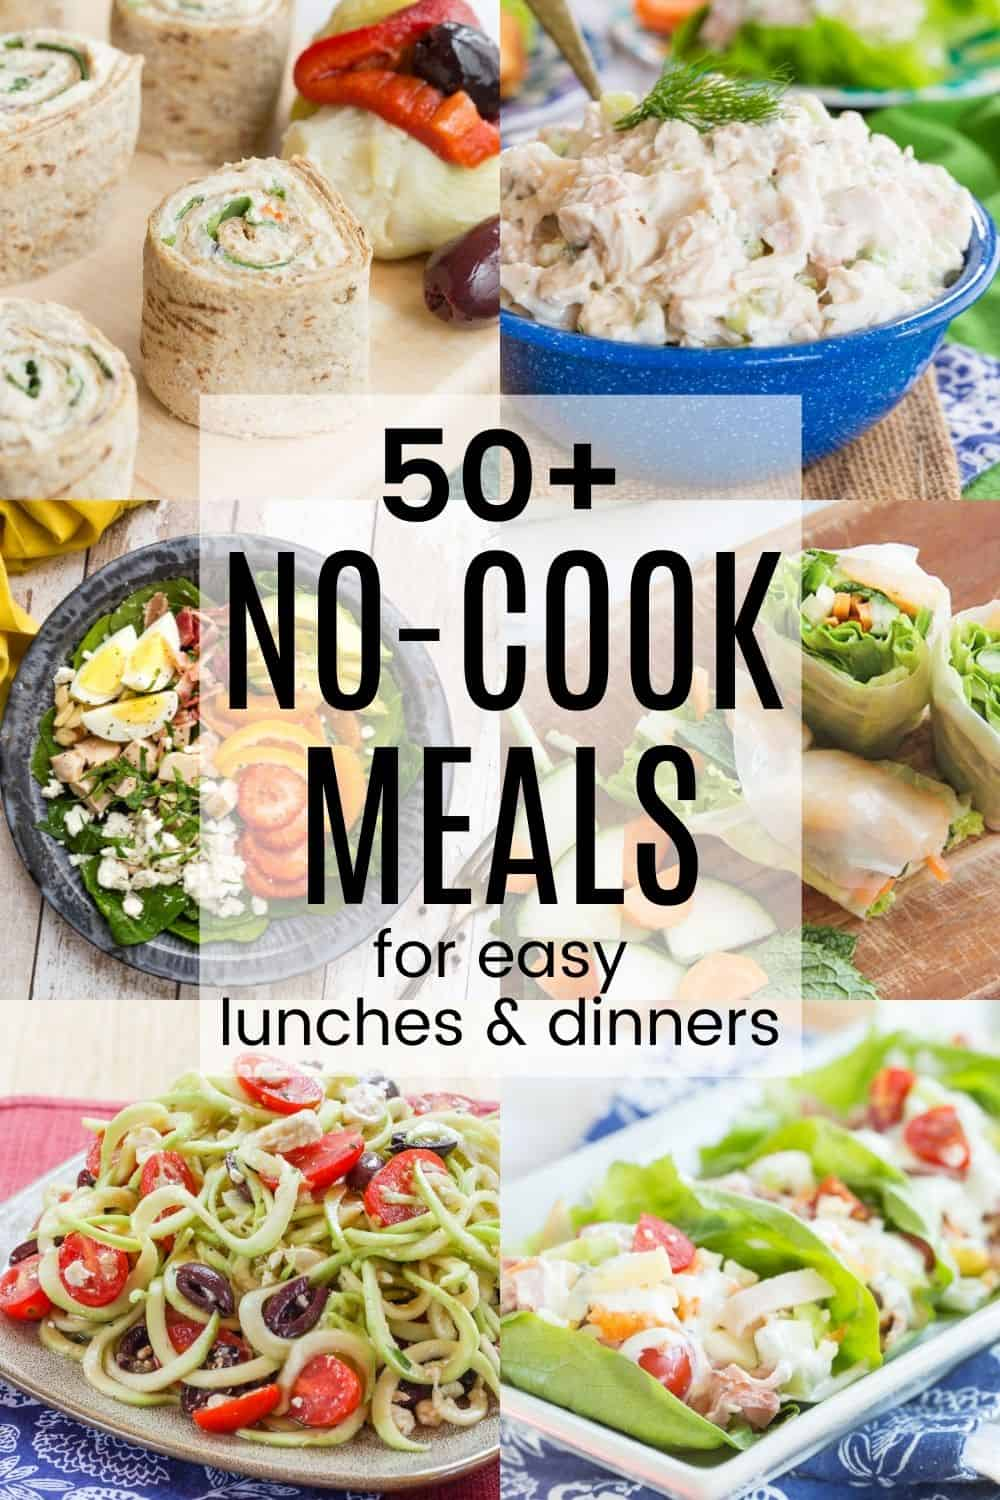 A collage of the Best No Cook Meals including chicken rollups, chicken salad, spinach salad, shrimp spring rolls, Greek zoodles salad, and lettuce wraps